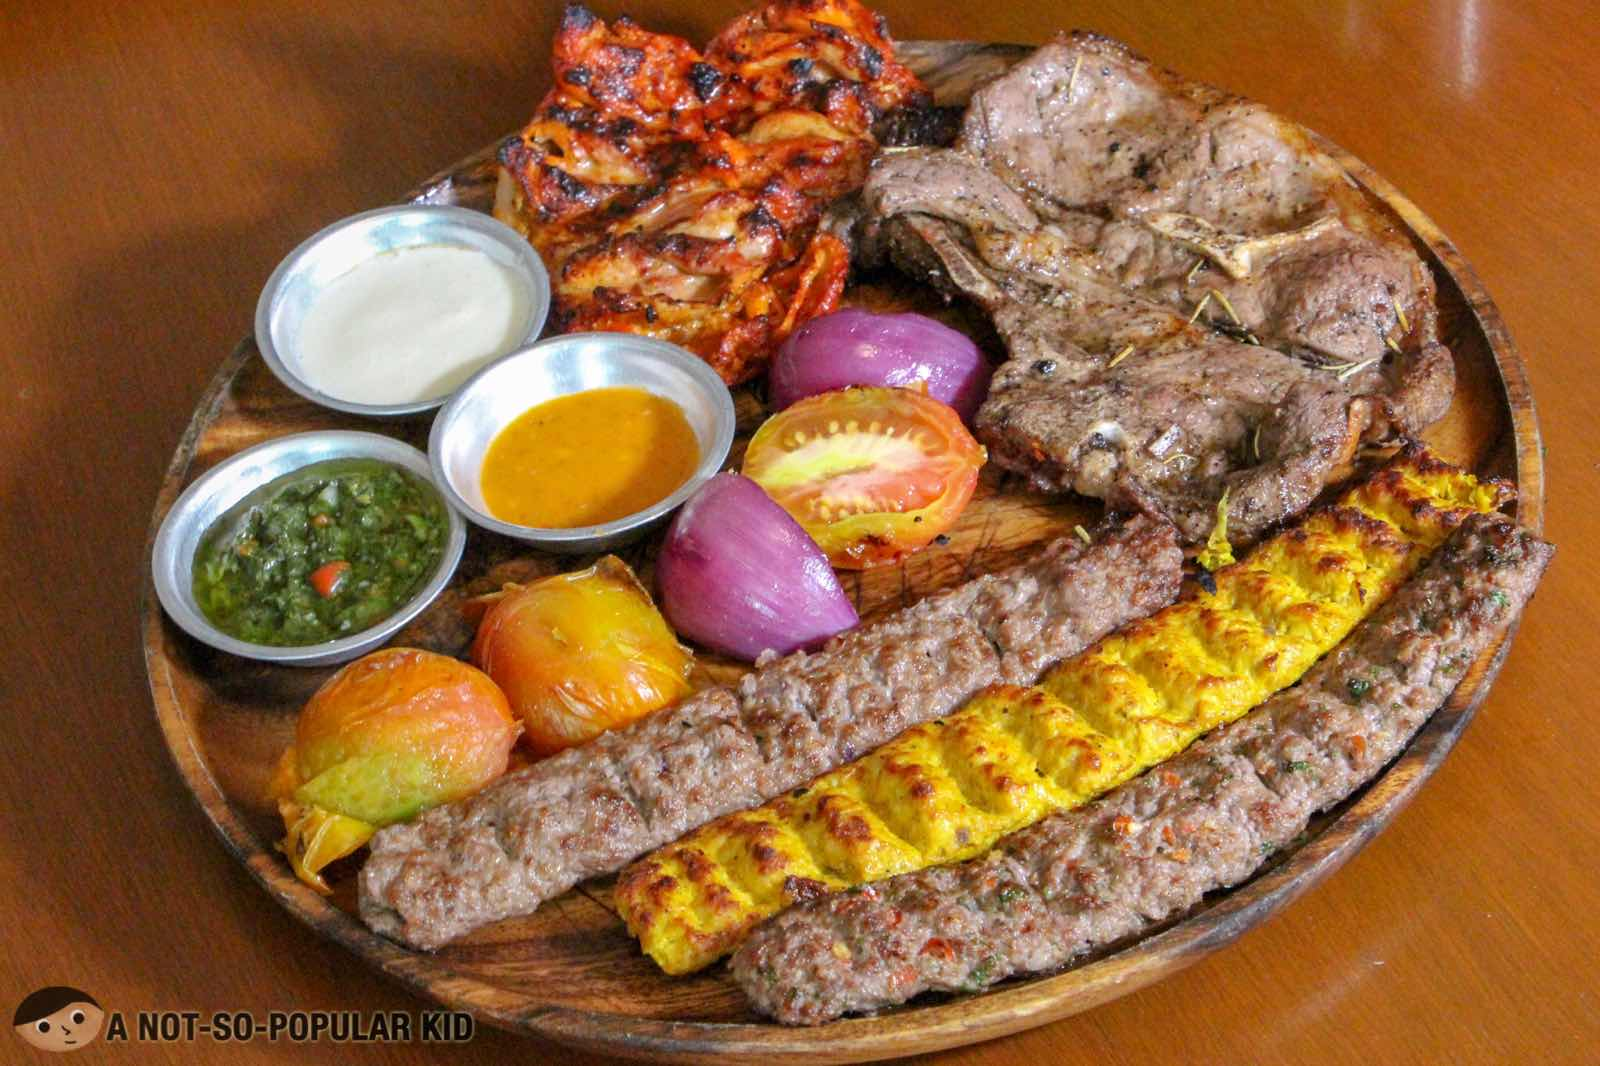 Kebab Sampler Platter of Kite Kebab Bar